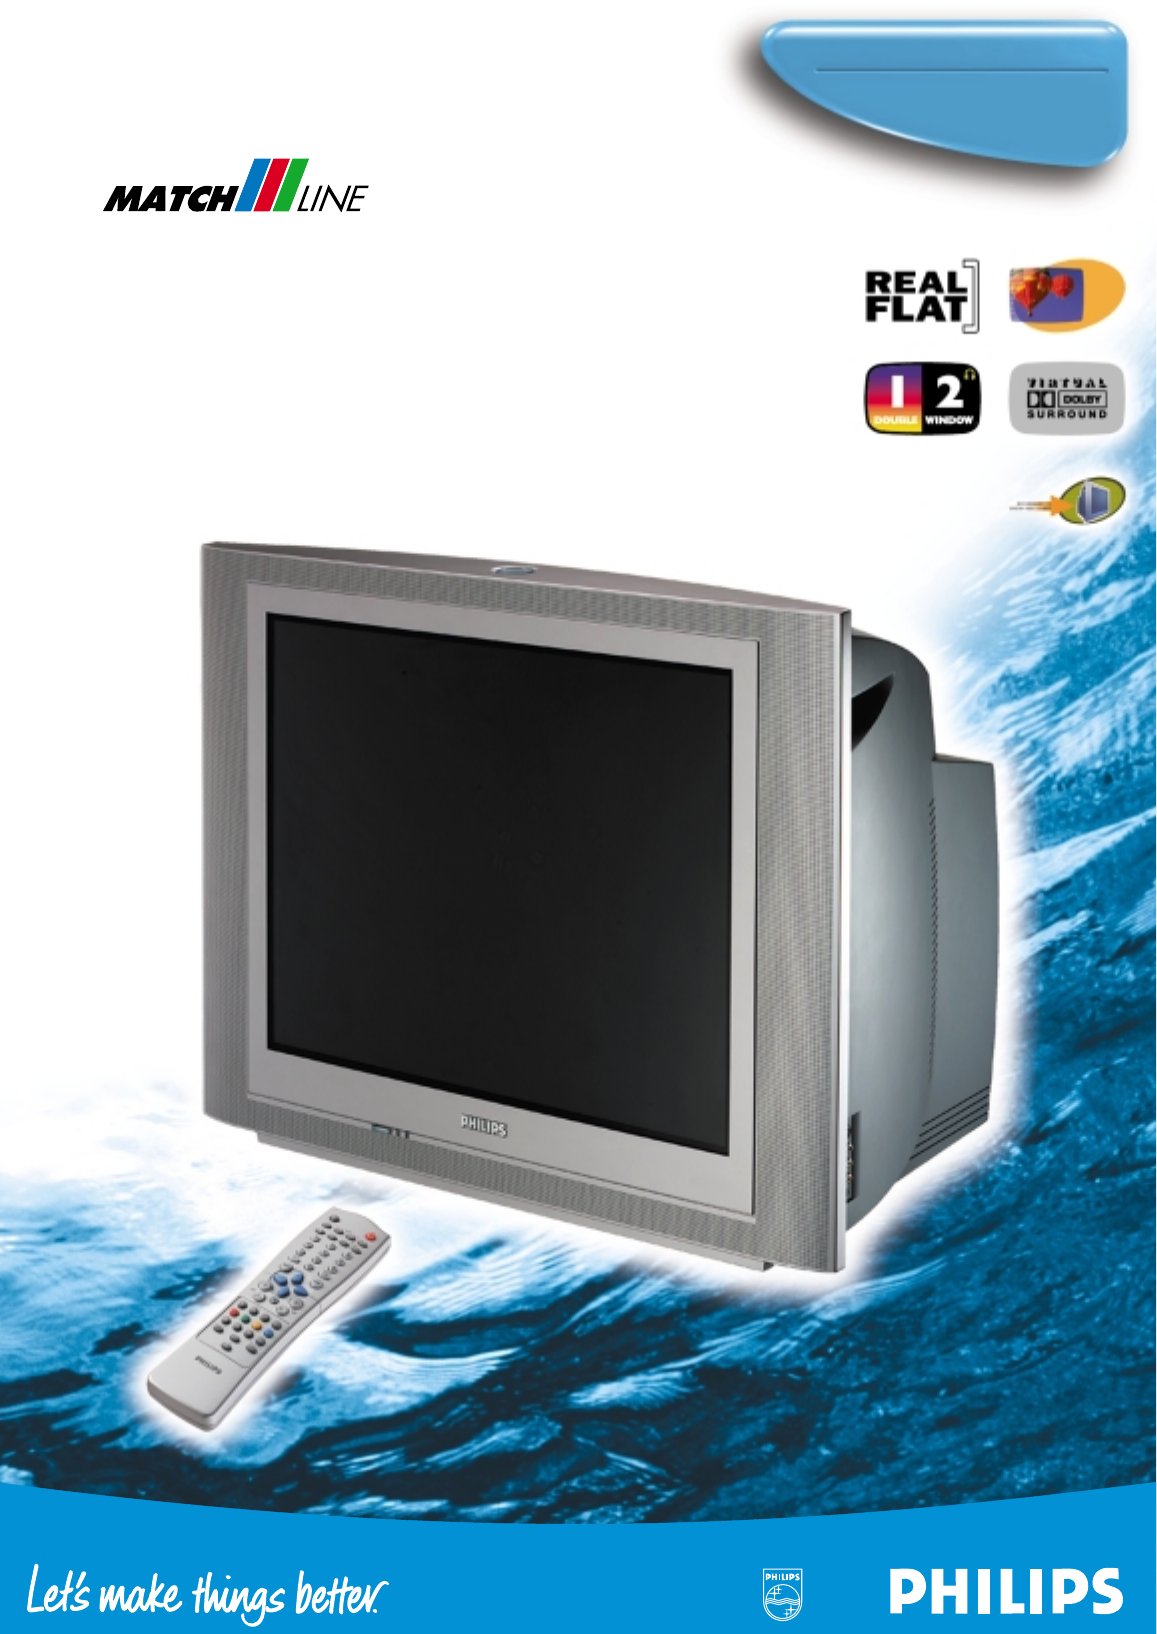 philips crt television 34pt6361 user guide manualsonline com rh tv manualsonline com Philips DVD Player Manual Philips DVD Player Manual